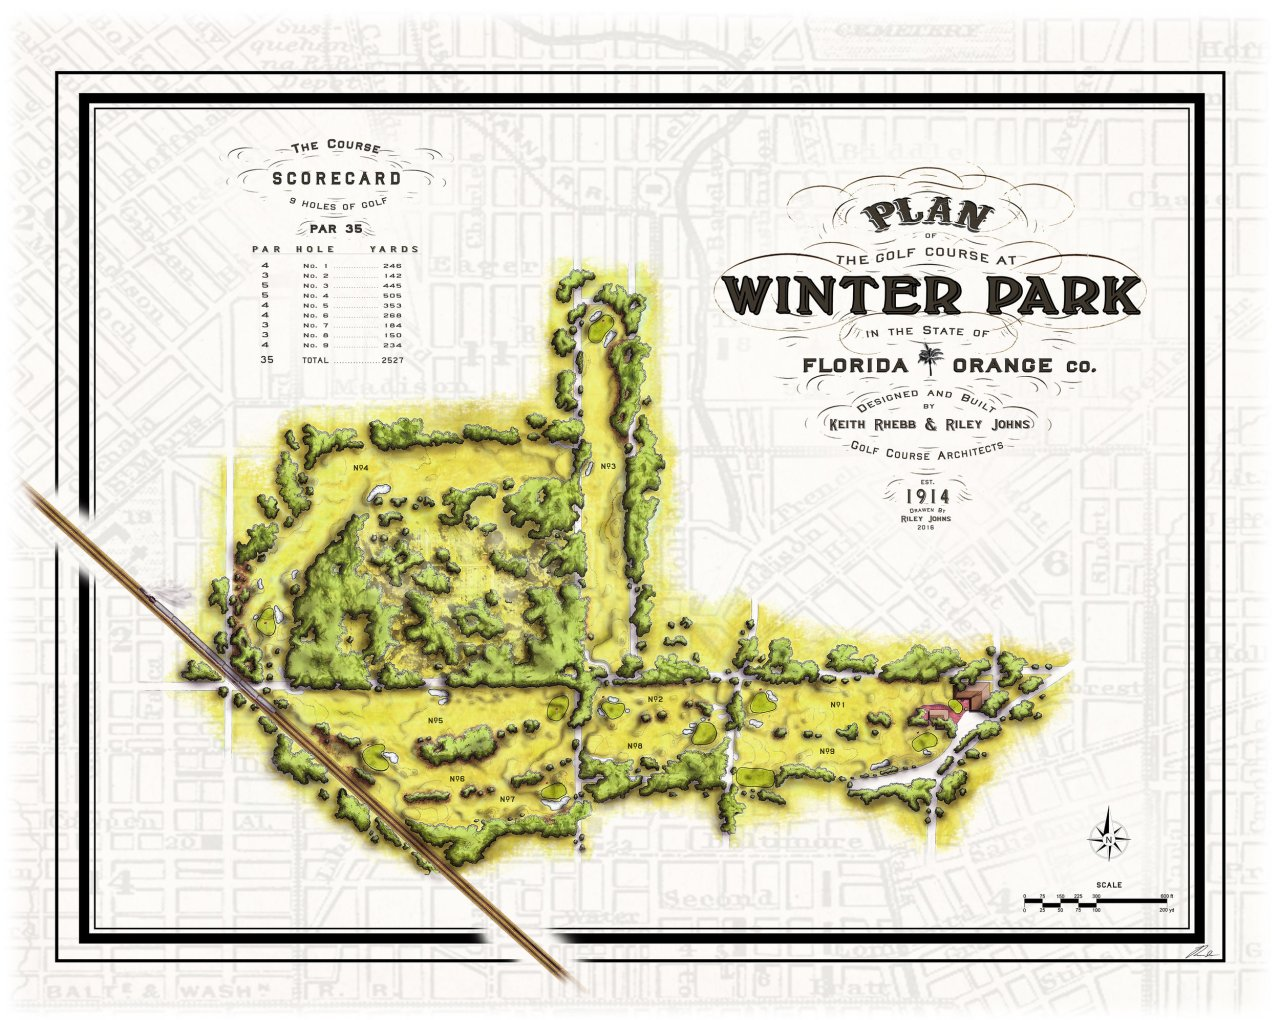 Winter Park Golf Course - Master Plan (drawn by Riley Johns)